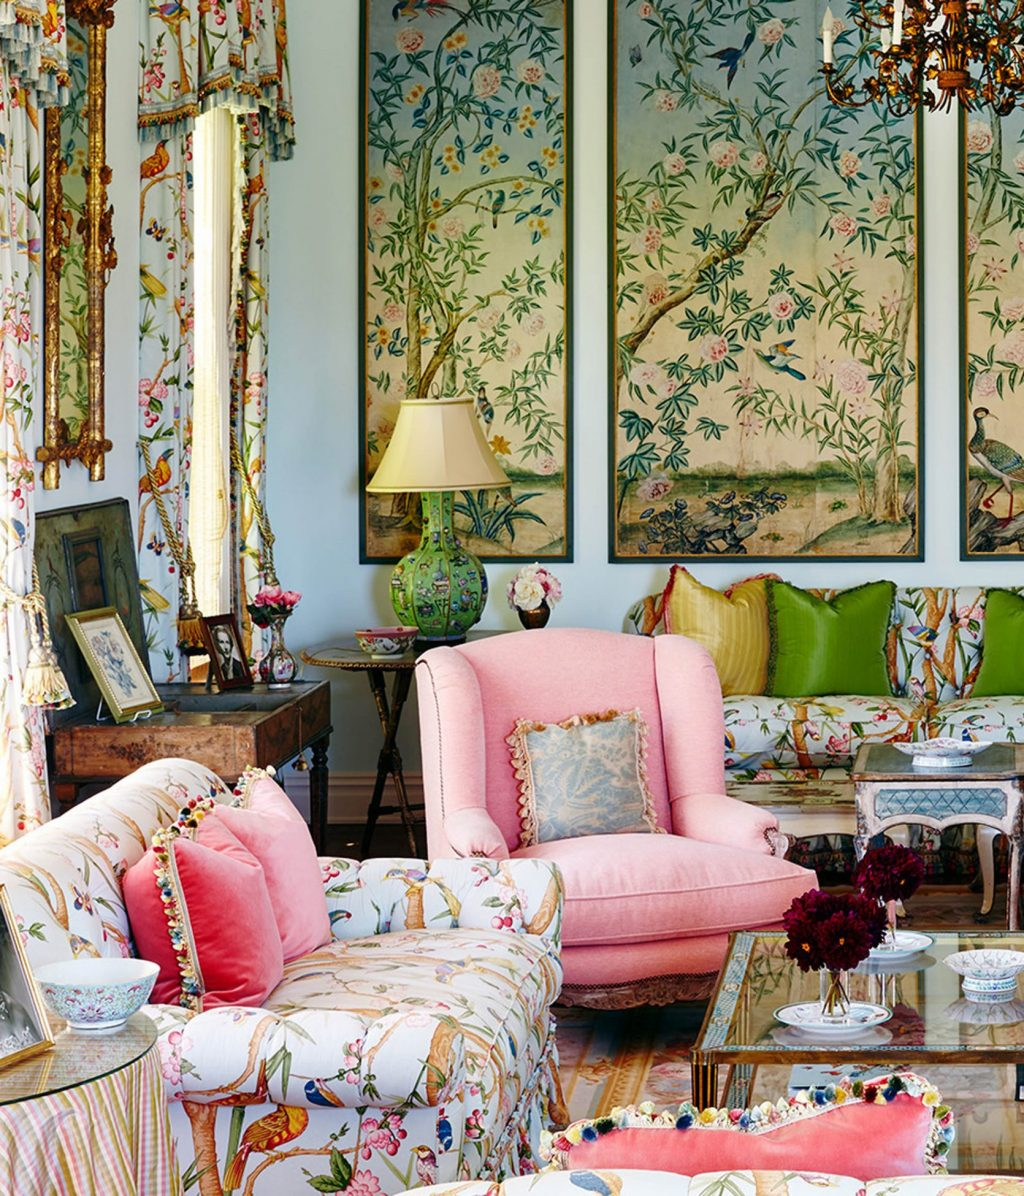 2018 Design Trends Chinoiserie Is Making A Comeback